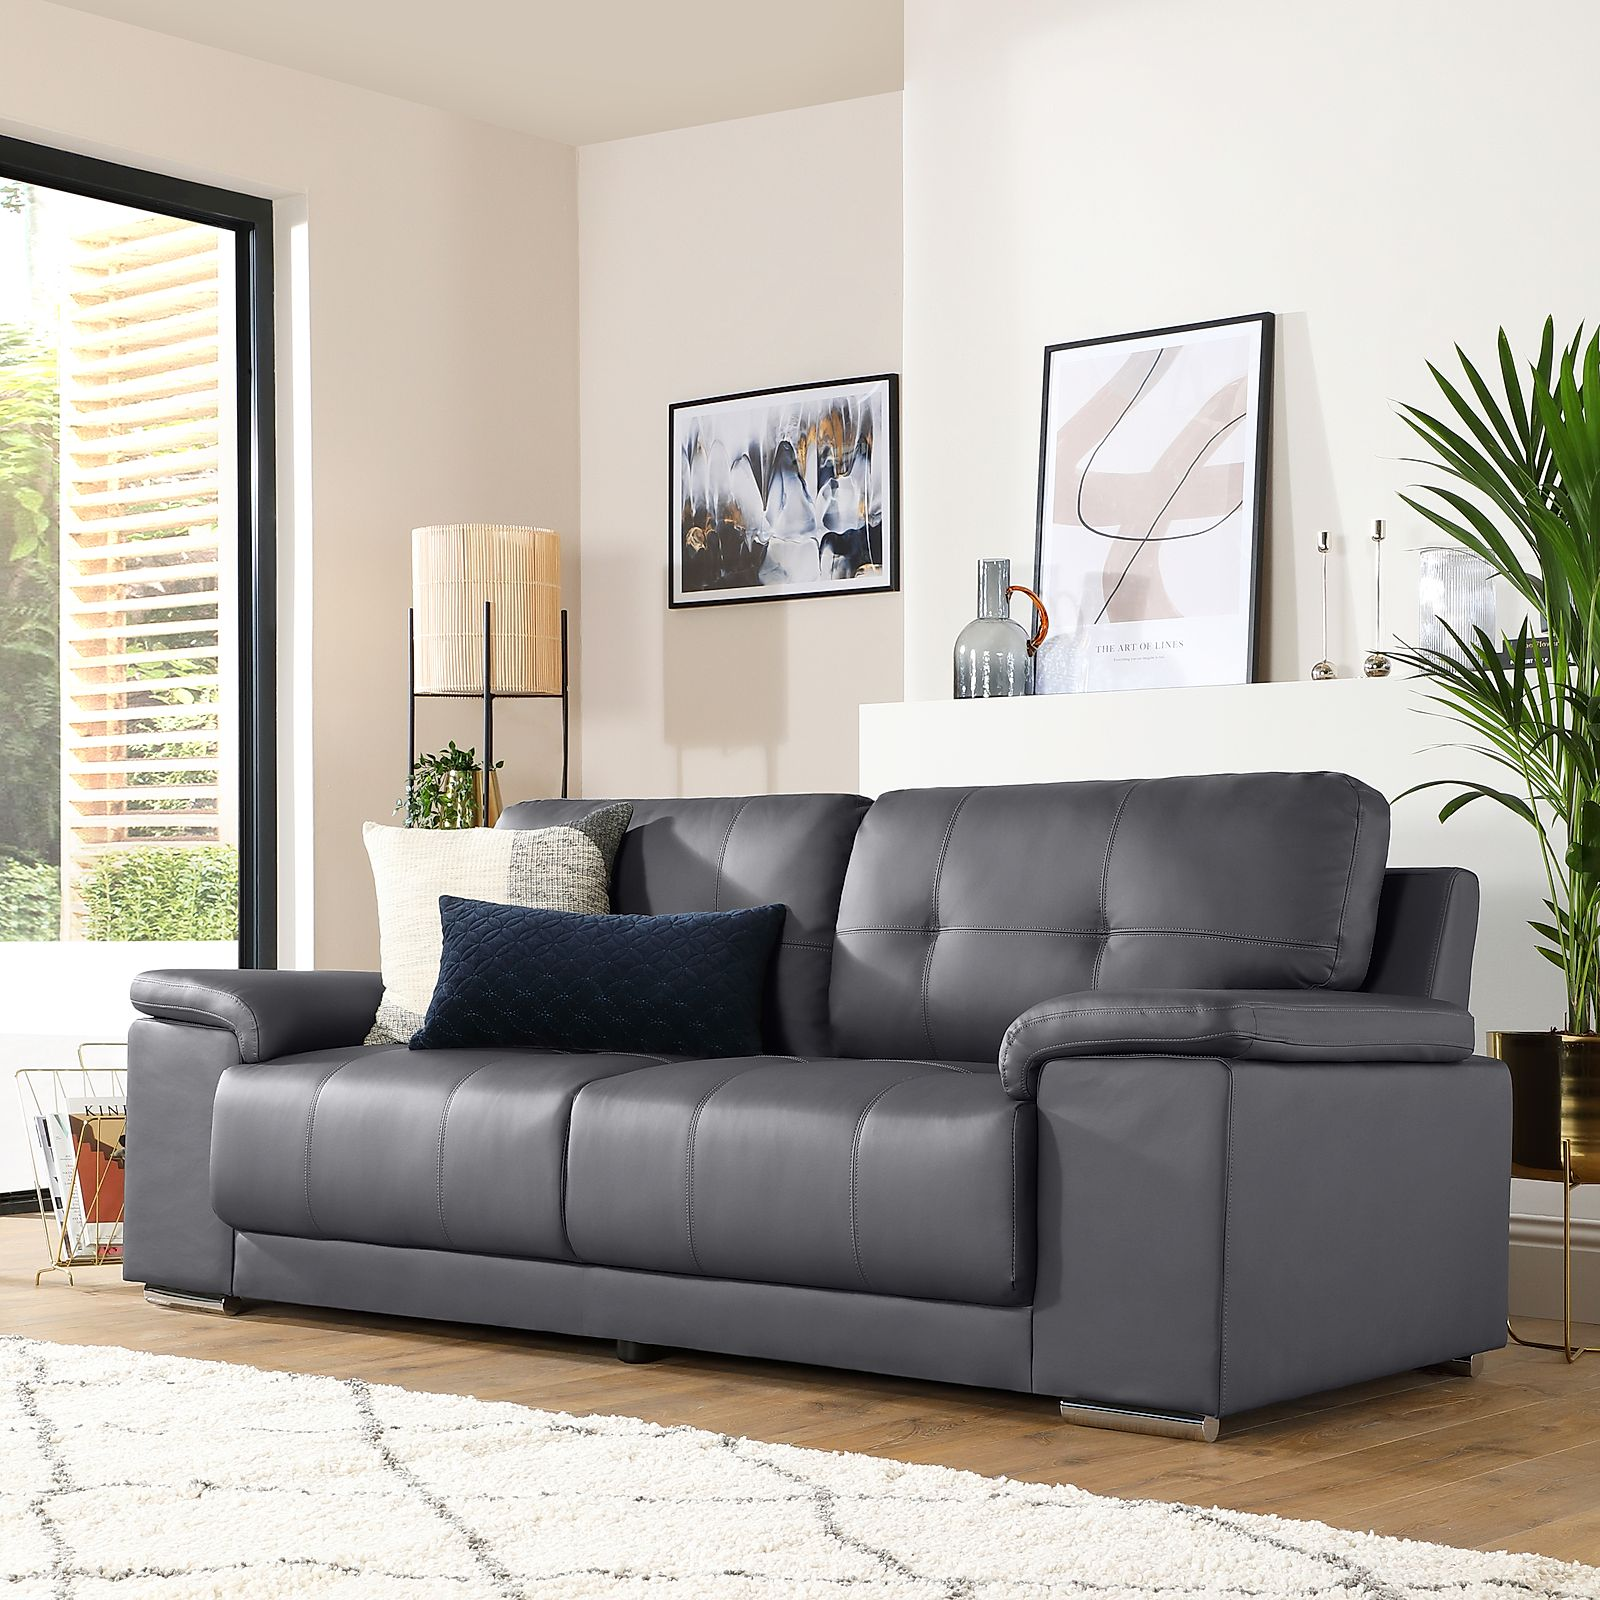 Kansas Grey Leather Sofa 3 Seater Only £499.99 | Furniture Choice